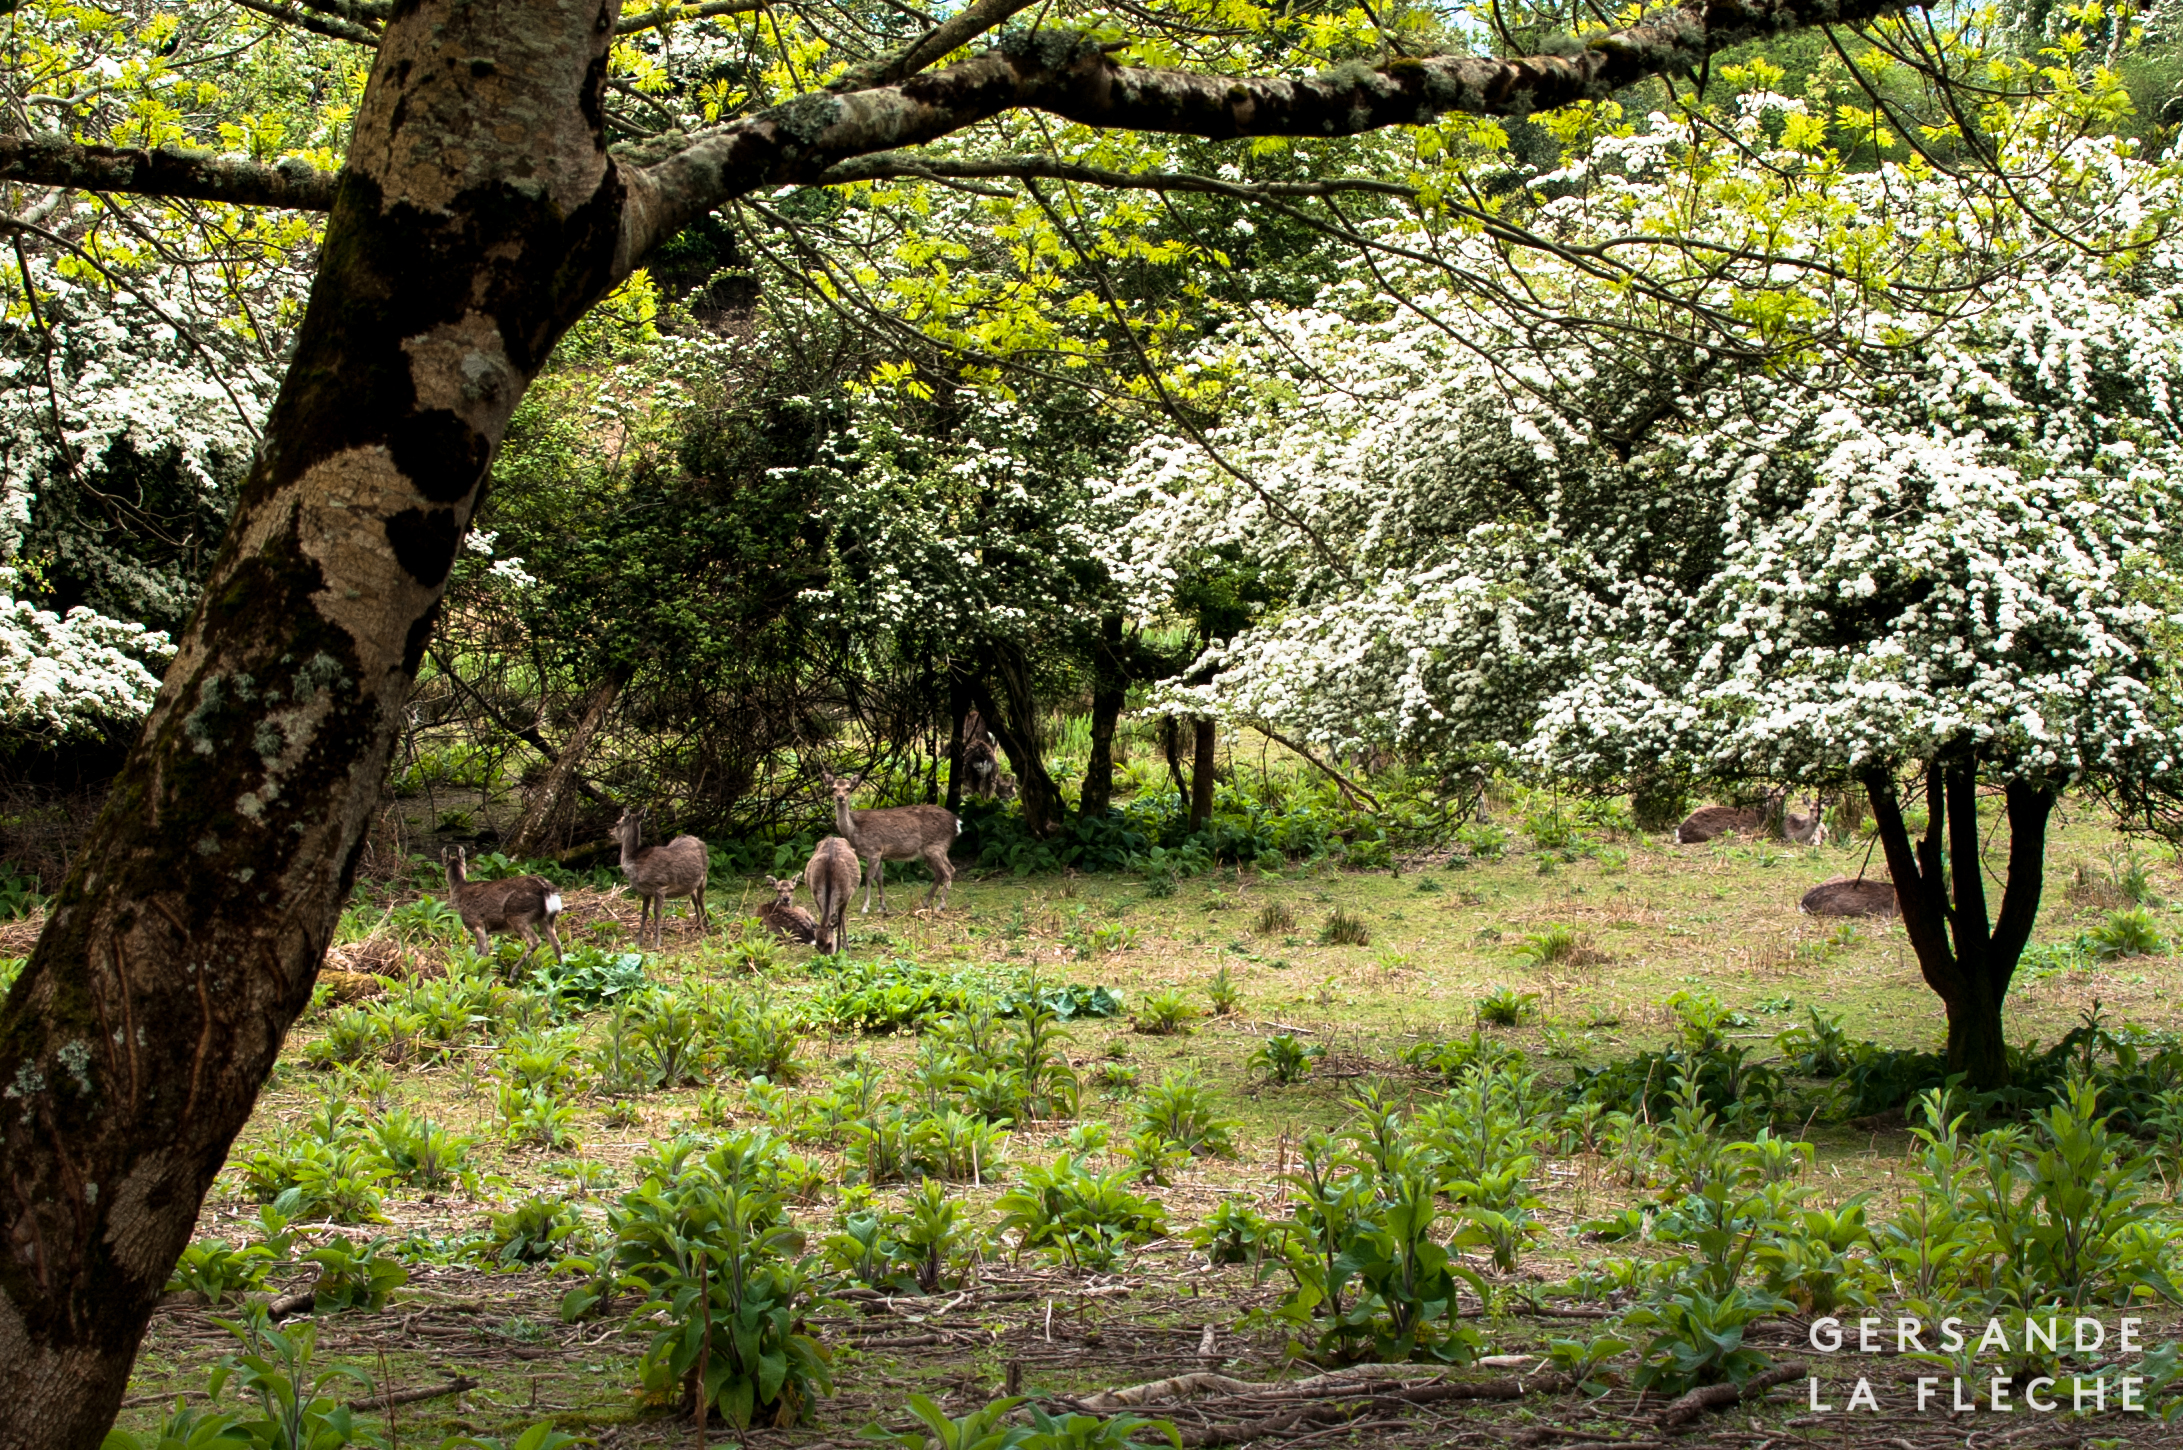 Photograph by the author of a herd of deer on Innisfallen Isle in Lough Leane.